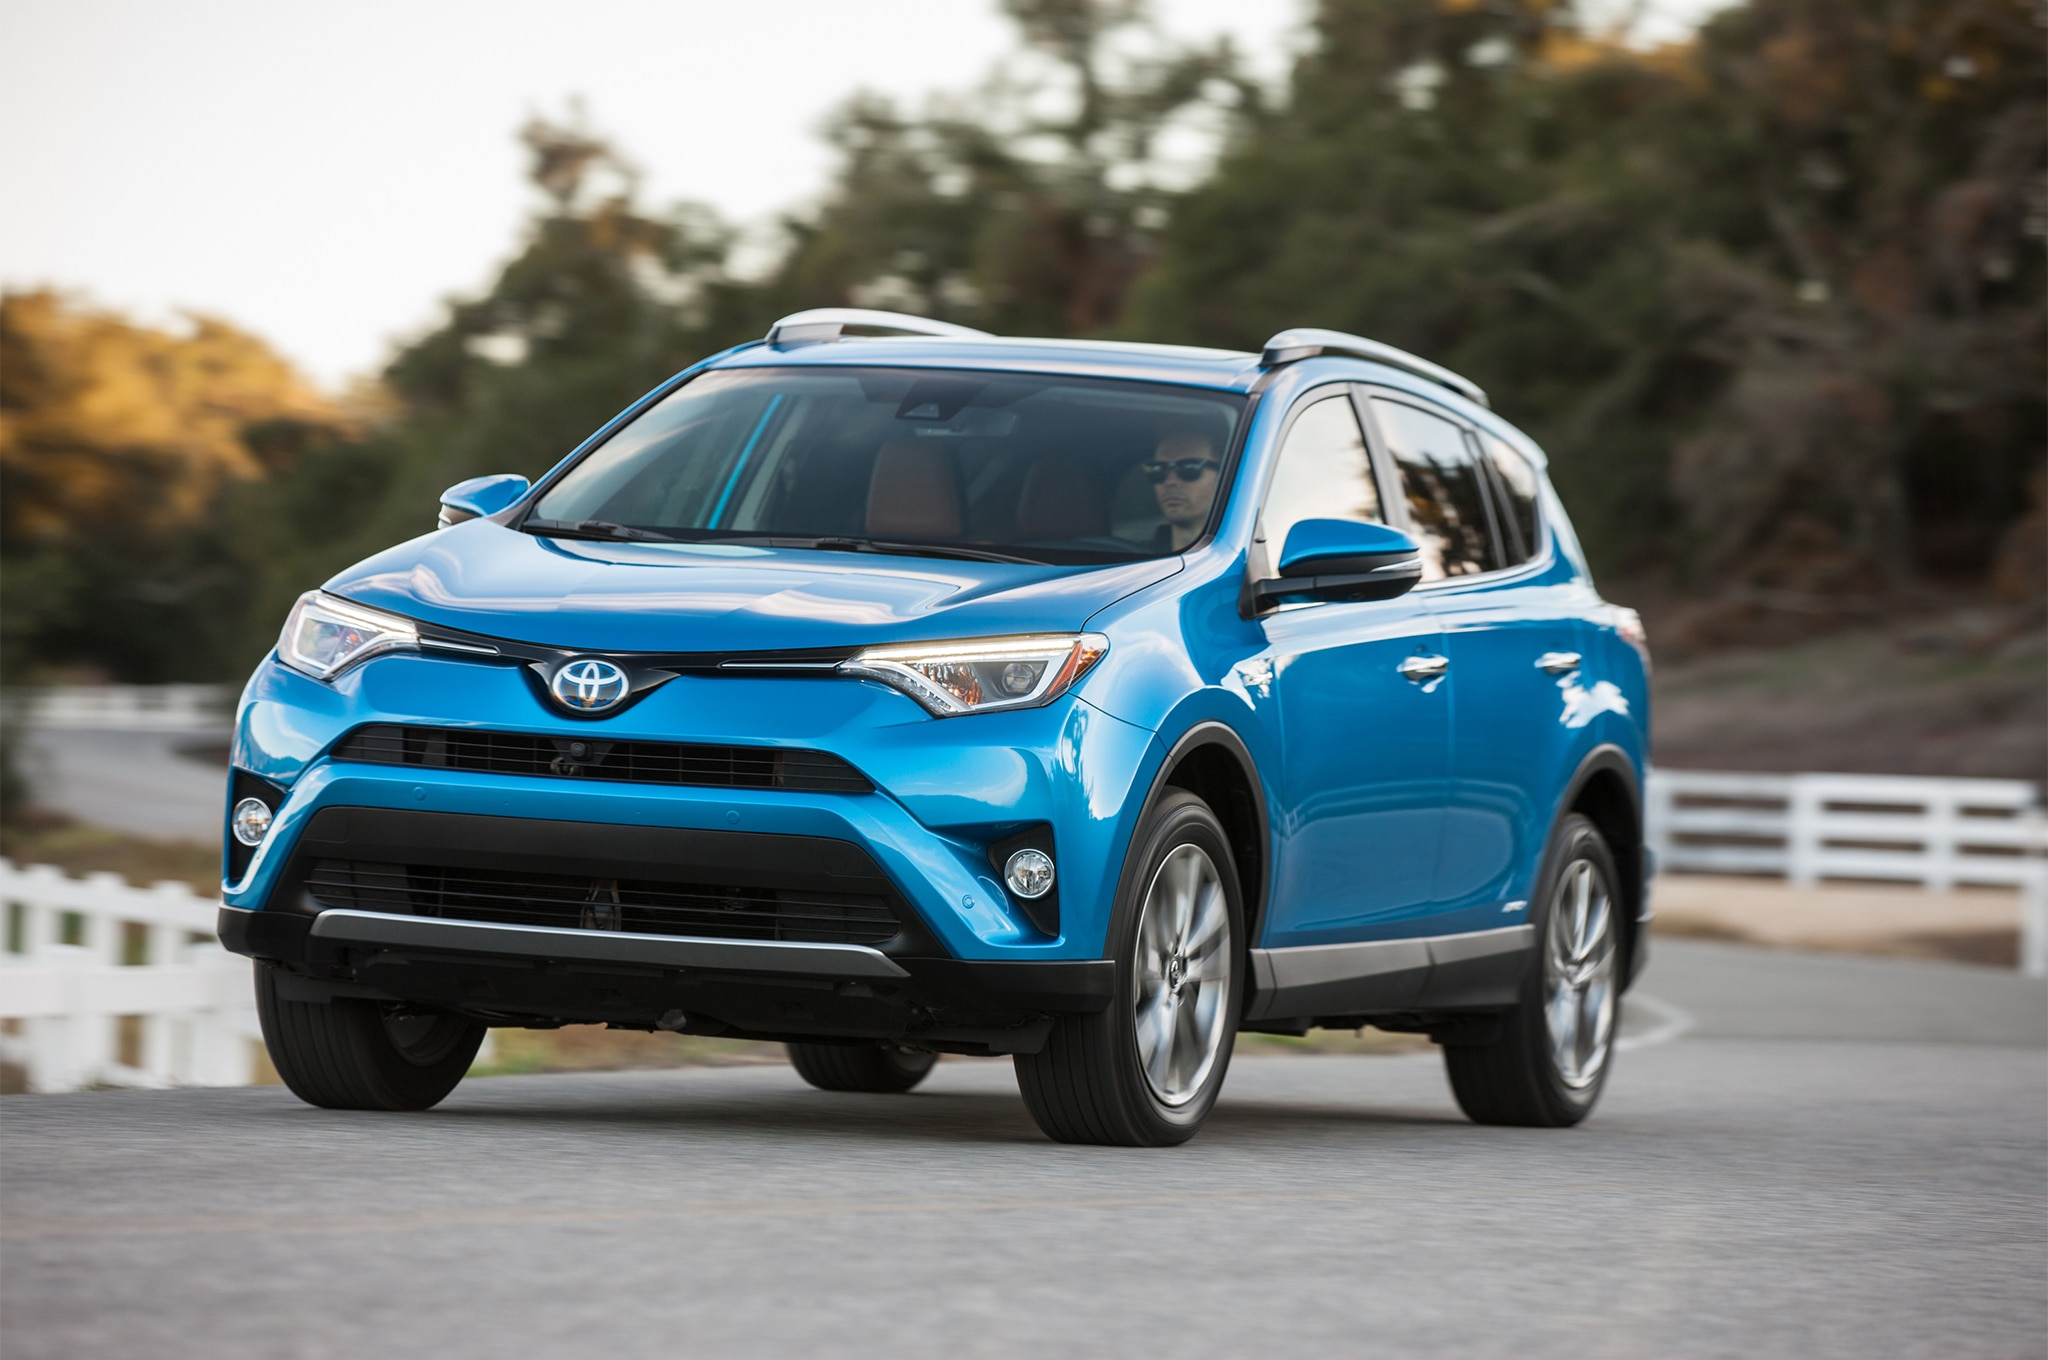 toyota rav4 2019 lo que debemos de esperar del pr ximo crossover motor trend en espa ol. Black Bedroom Furniture Sets. Home Design Ideas